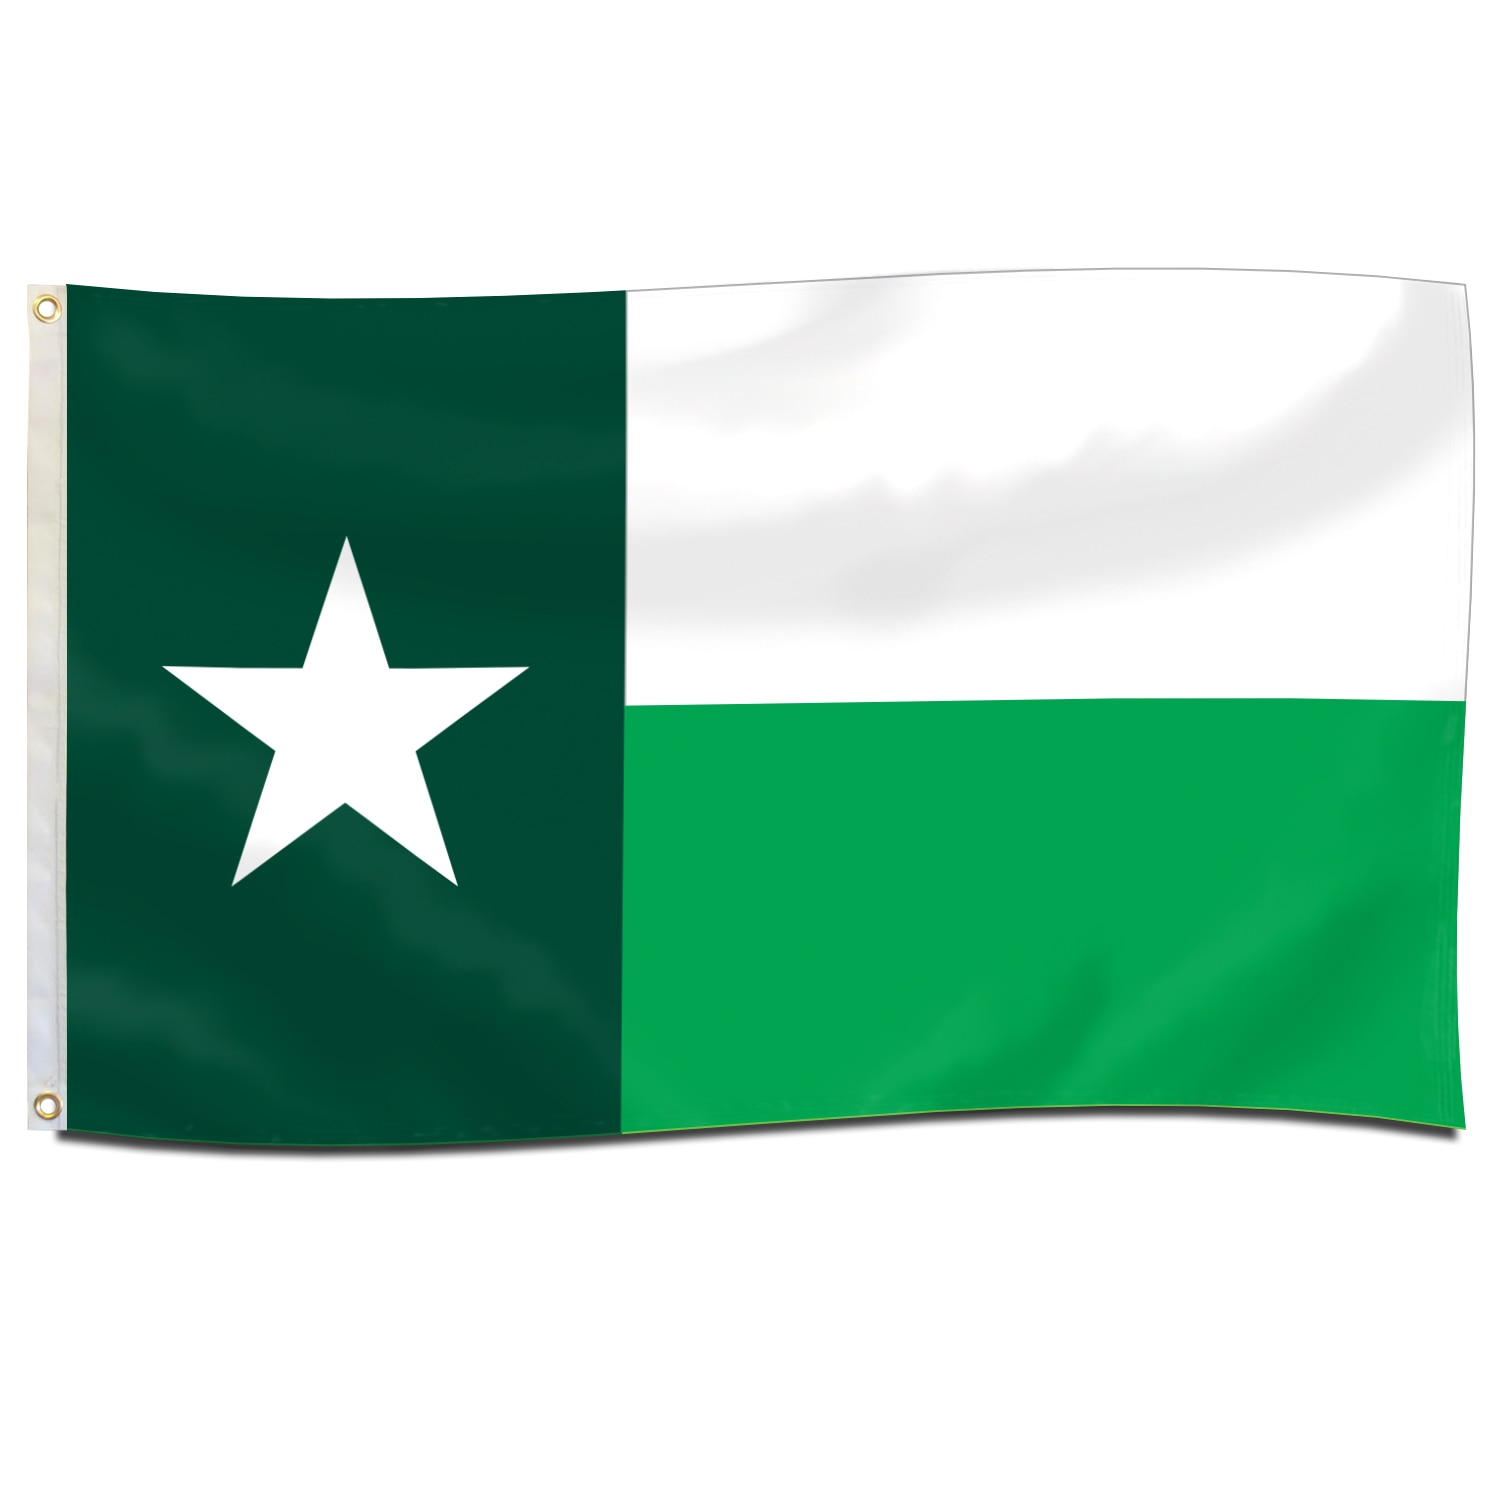 University of North Texas 3'x5' Nylomax Flag